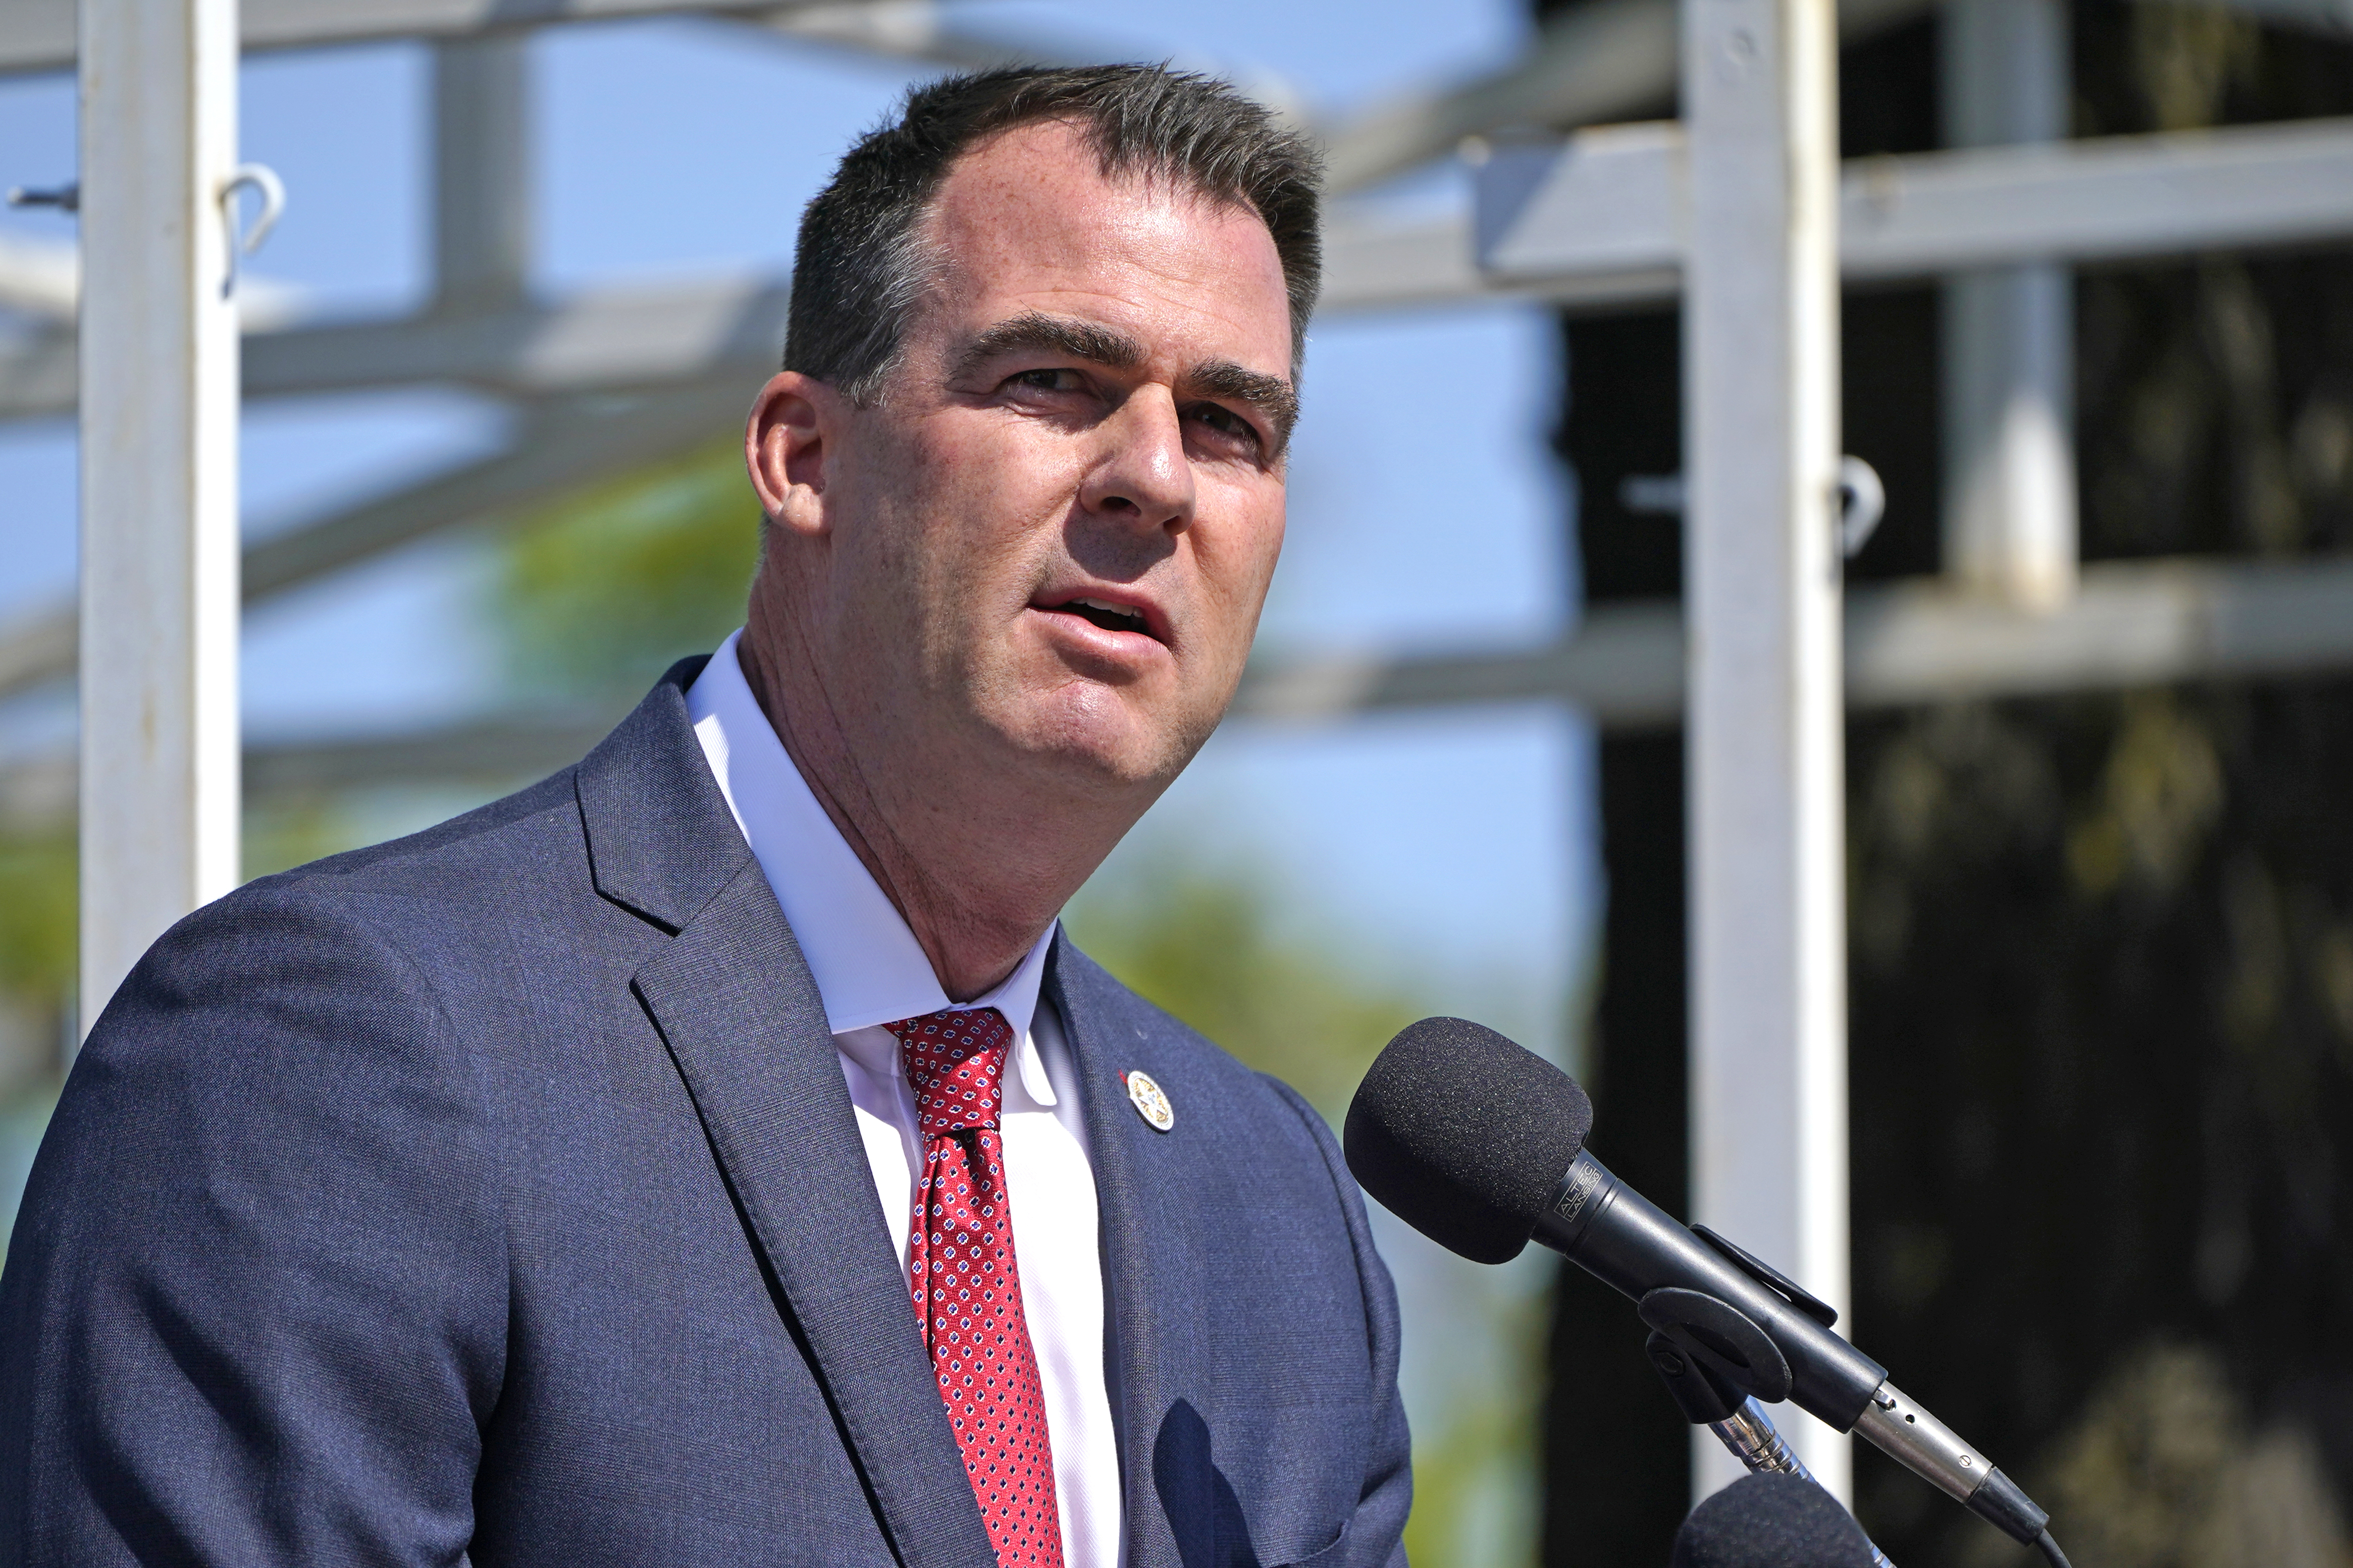 In this May 7, 2021, file photo, Oklahoma Gov. Kevin Stitt speaks during an Oklahoma Law Enforcement Memorial Ceremony in Oklahoma City.